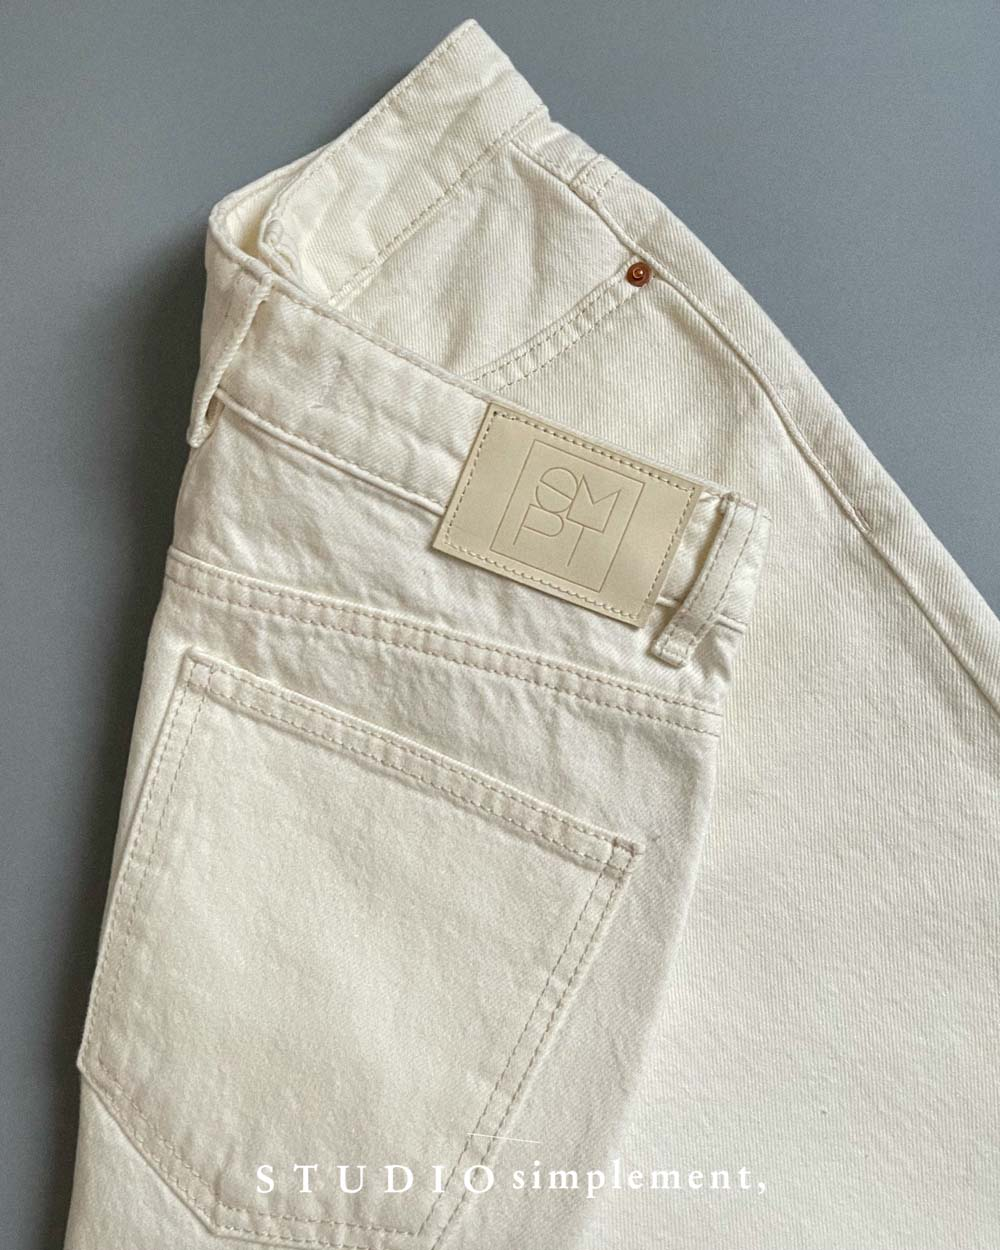 180 Pigalle White Jeans (CONE DENIM MILLS)